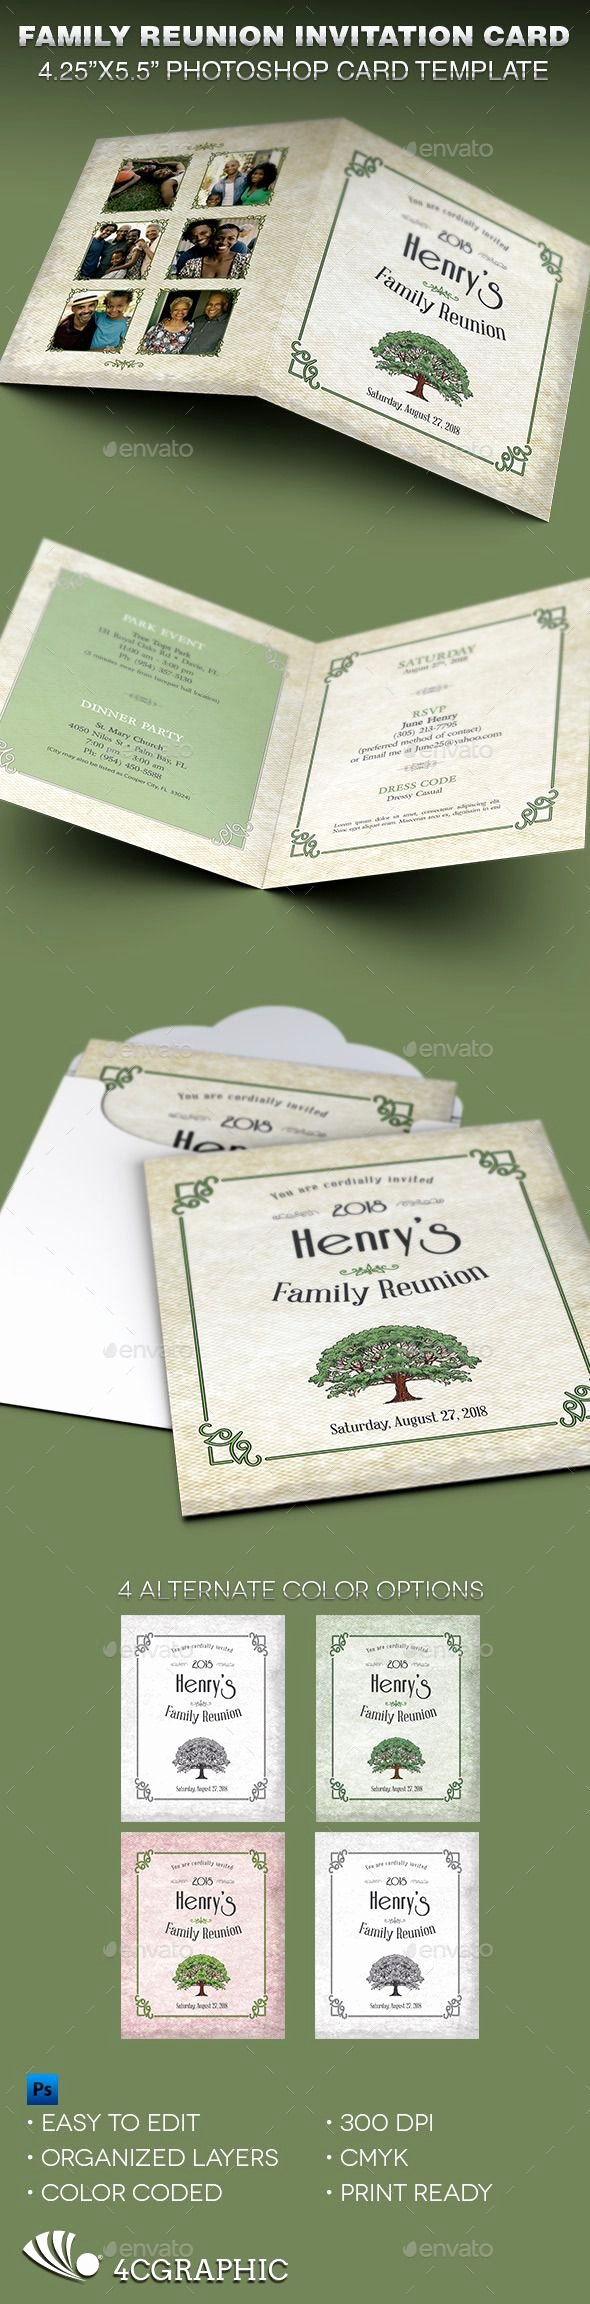 Family Reunion Invitations Templates Awesome 17 Best Ideas About Family Reunion Invitations On